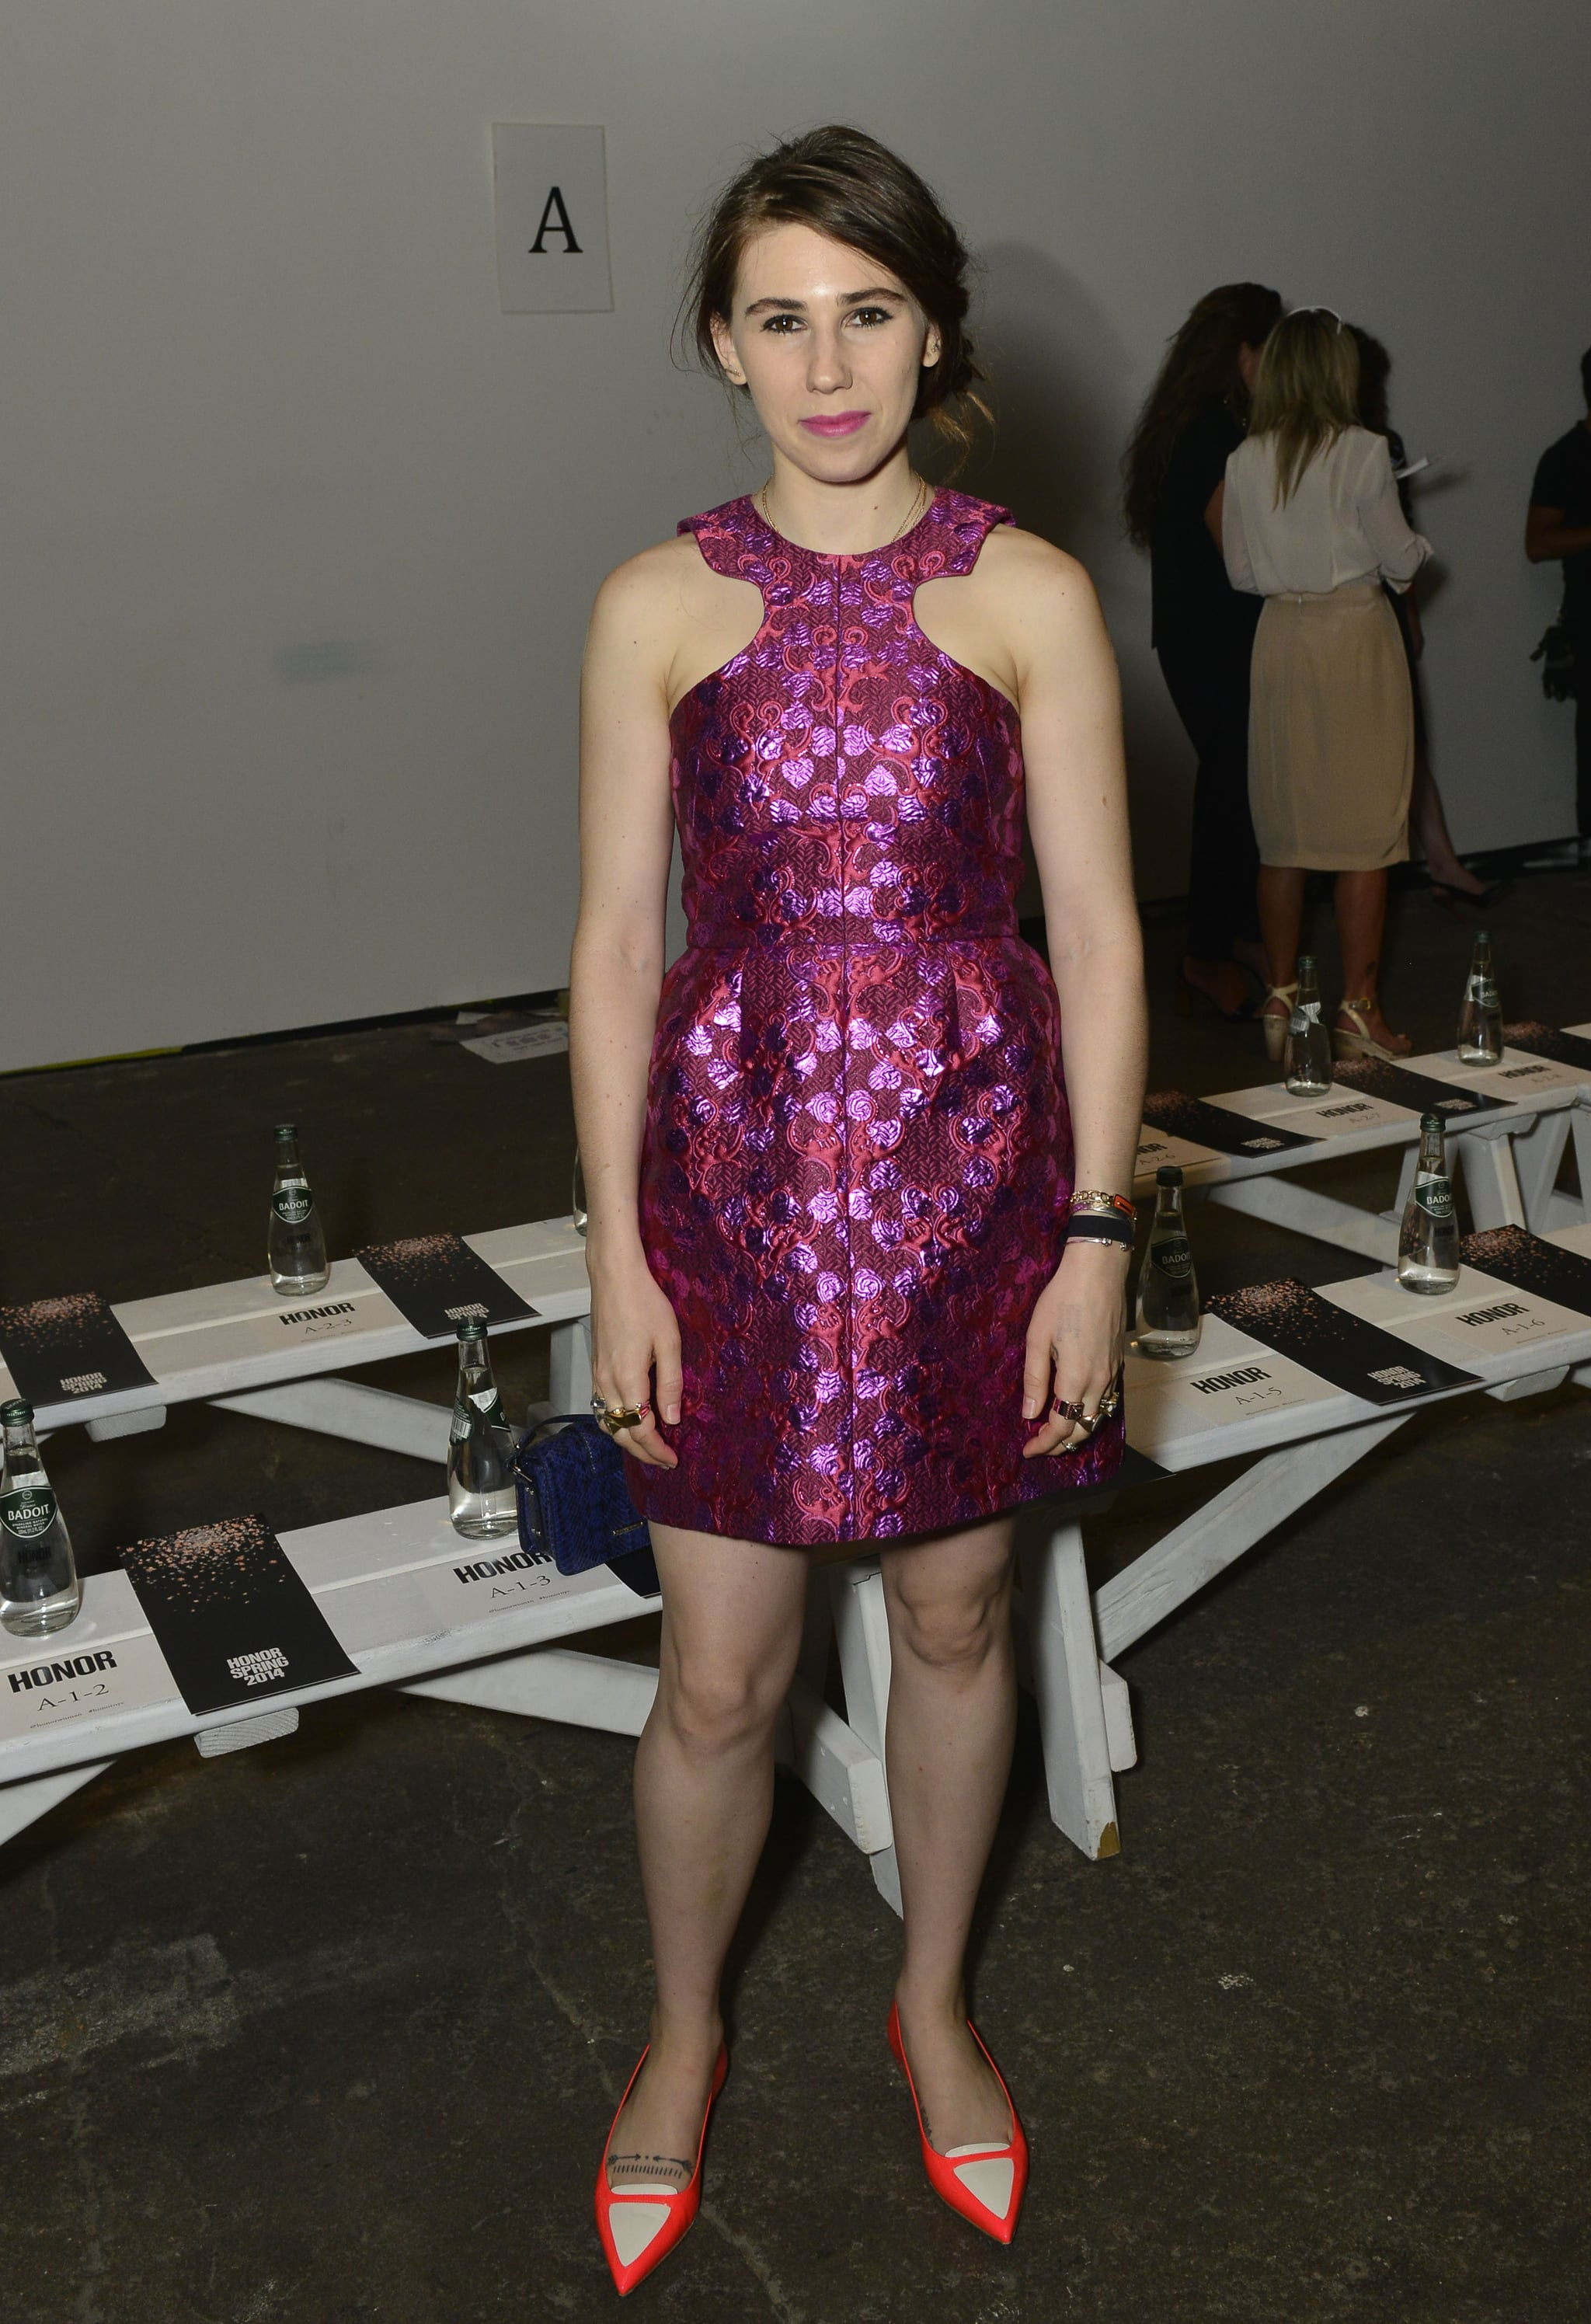 Girls star Zosia Mamet popped up backstage at the Honor show on Thursday.